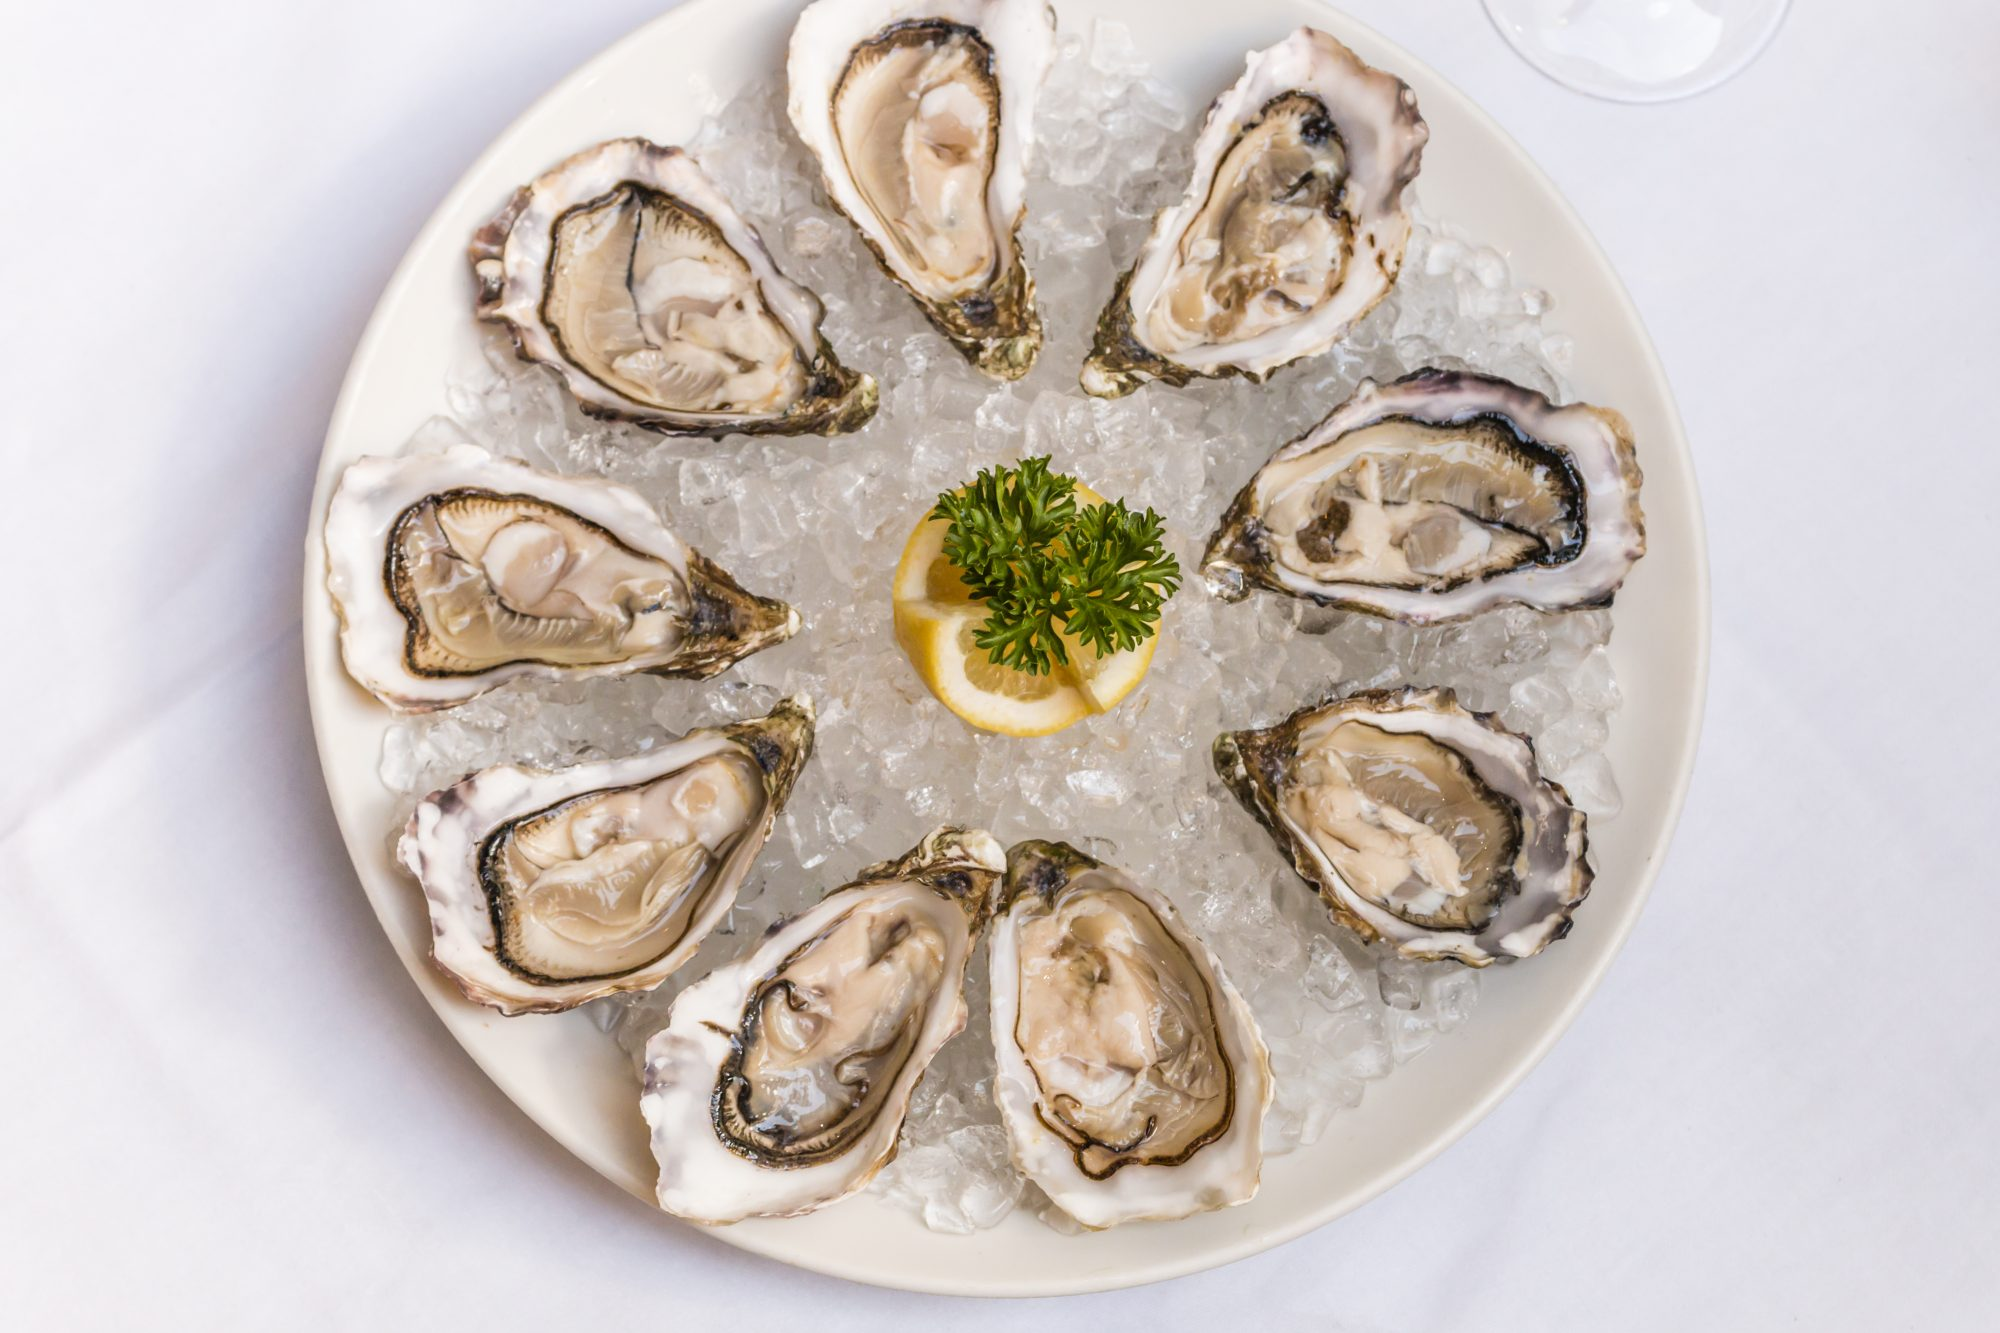 Oysters Getty 3/12/20